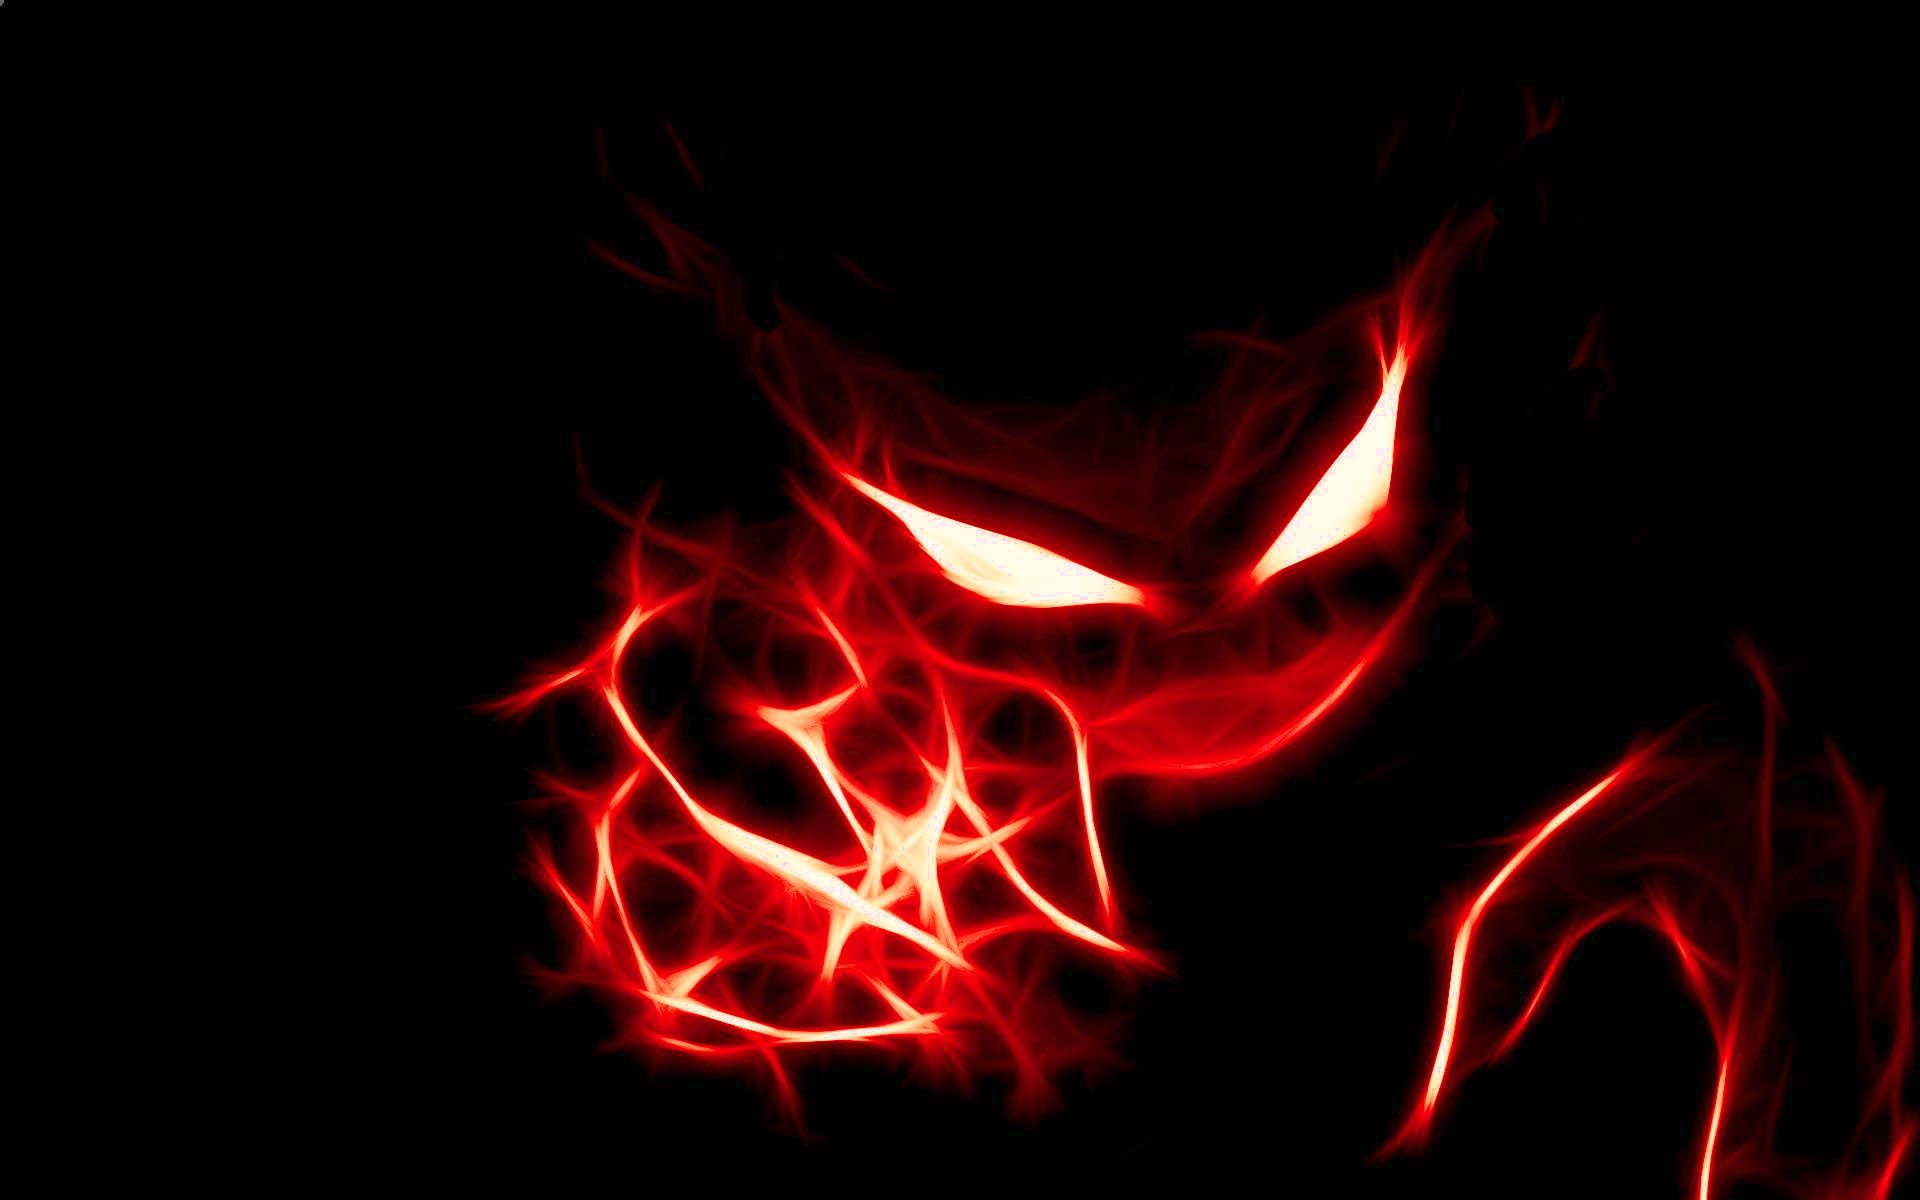 Awesome Red Haunter Wallpaper Red And Black Wallpaper Black Hd Wallpaper Red Wallpaper